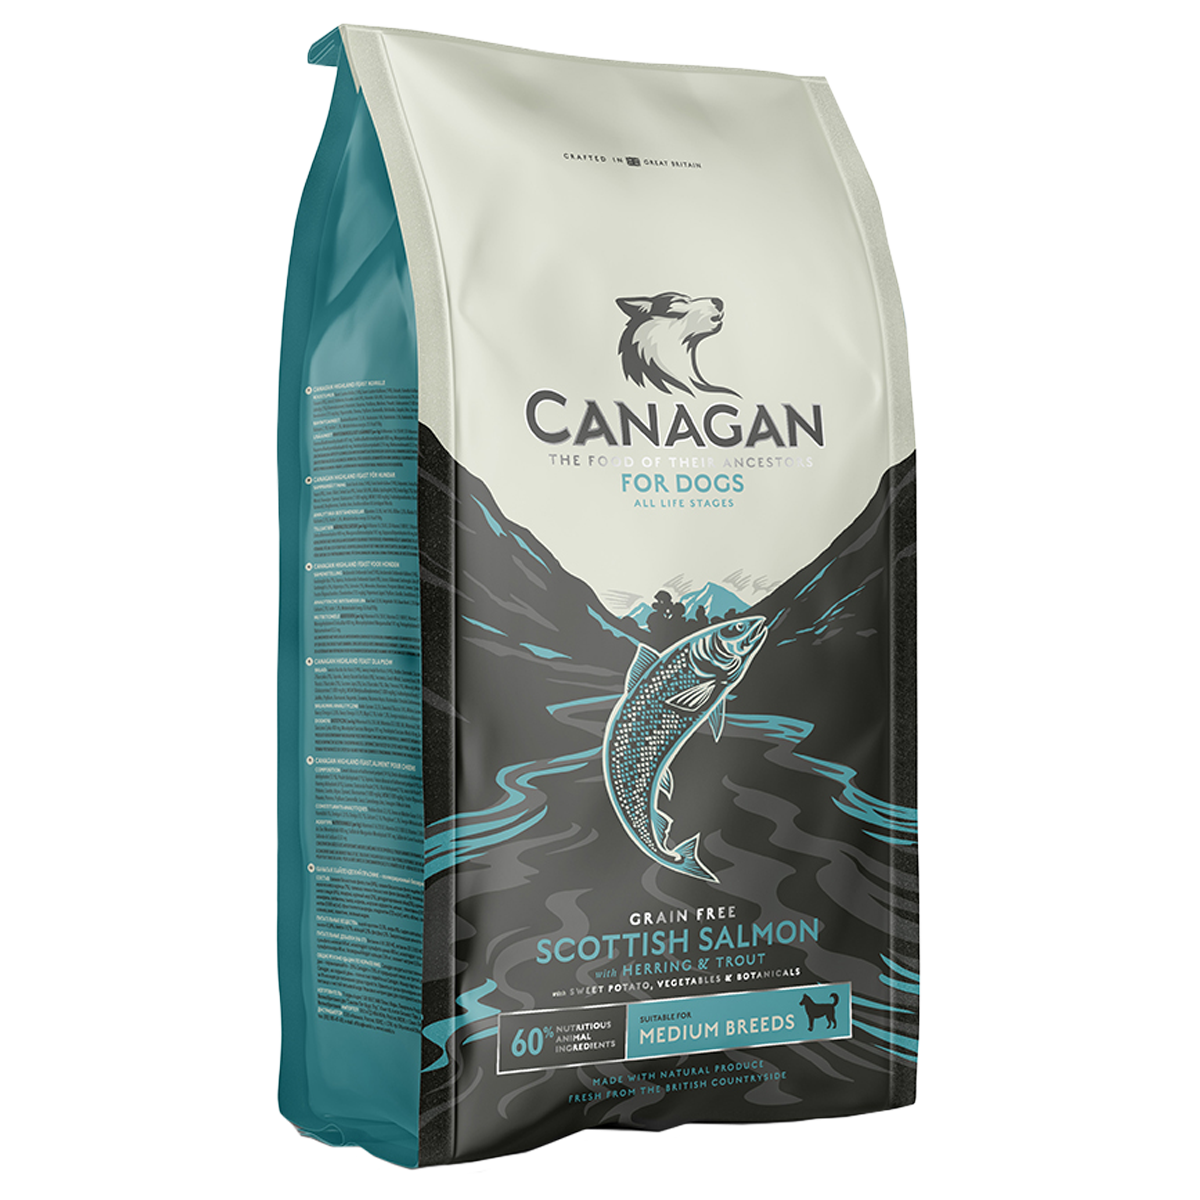 Canagan Scottish Salmon Grain Free Food For Dogs